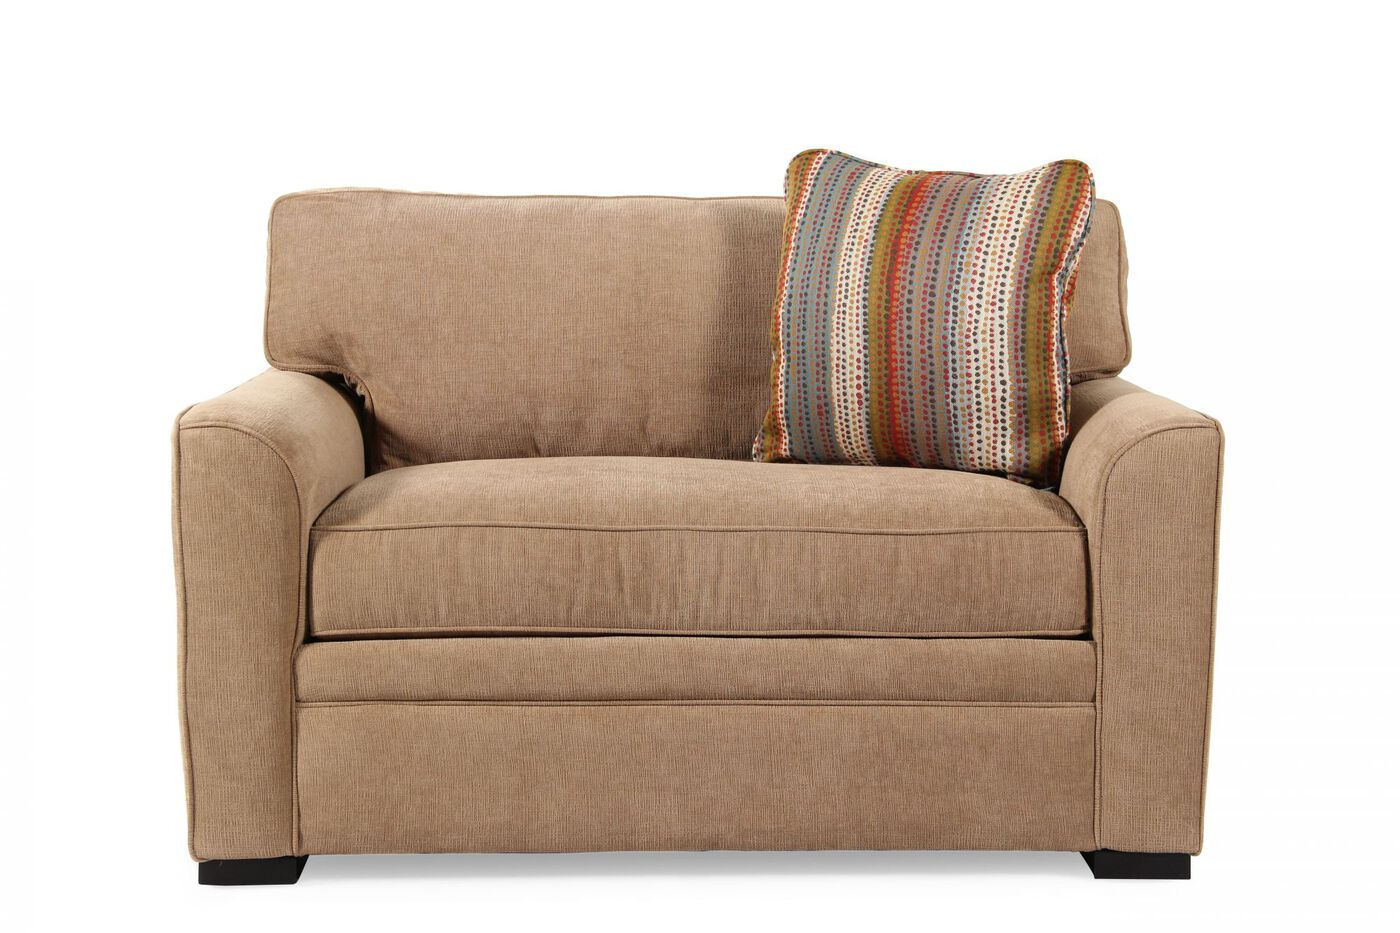 Transitional 75quot sleeper sofa in coffee mathis brothers for Transitional sectional sofa sleeper